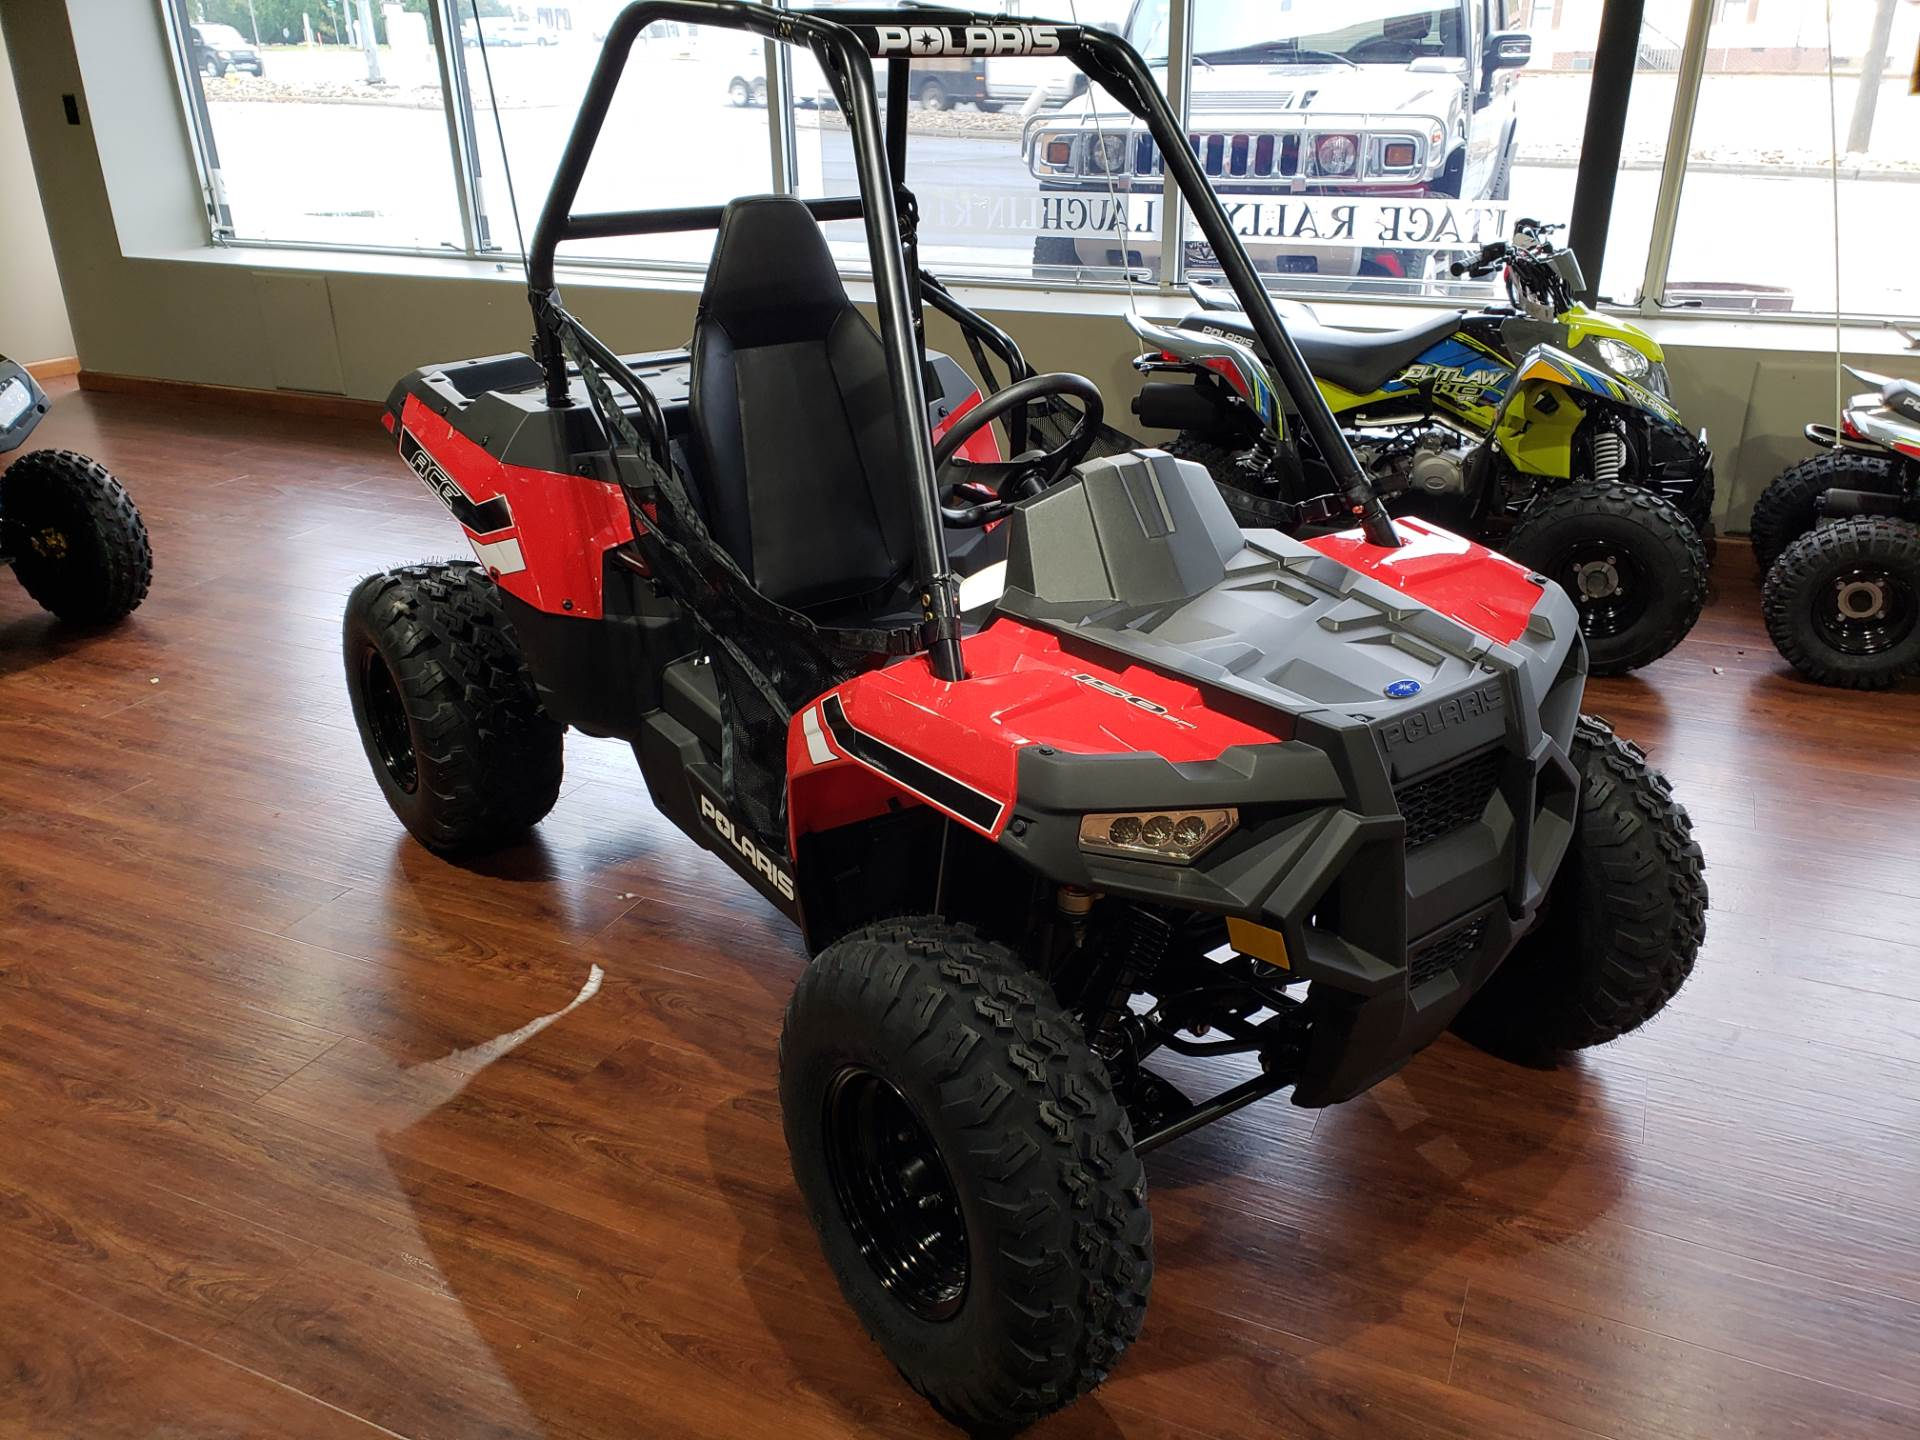 2018 Polaris Ace 150 EFI 4